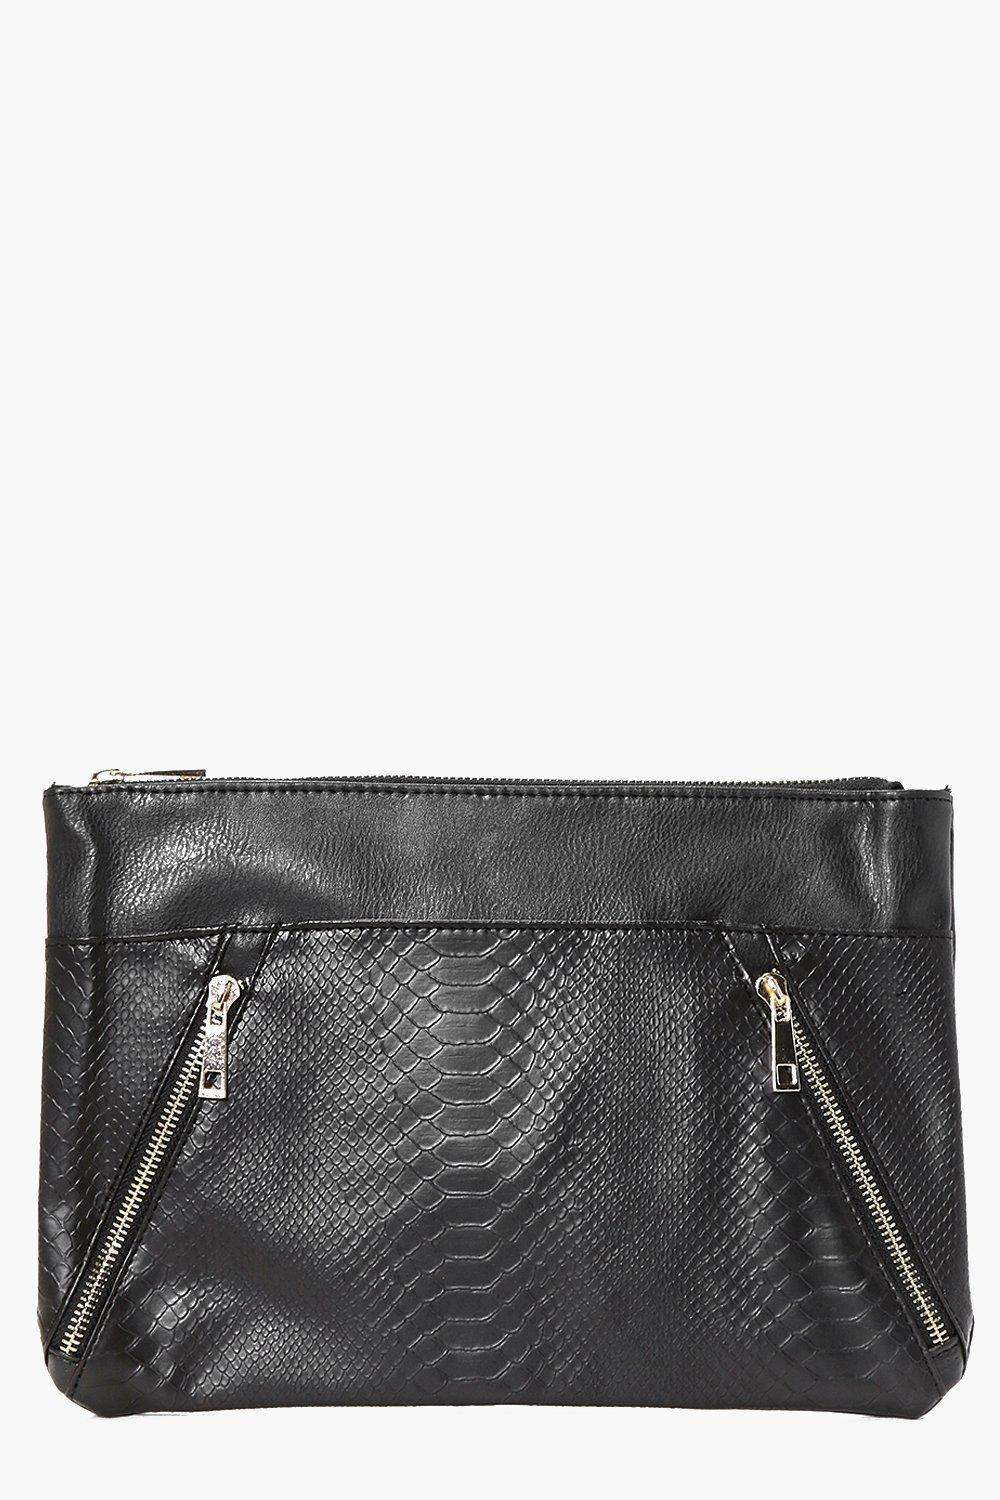 Zip Detail Contrast Panel Clutch Bag Black - predominant colour: black; occasions: evening; type of pattern: standard; style: clutch; length: handle; size: standard; material: leather; embellishment: zips; pattern: plain; finish: plain; season: a/w 2016; wardrobe: event